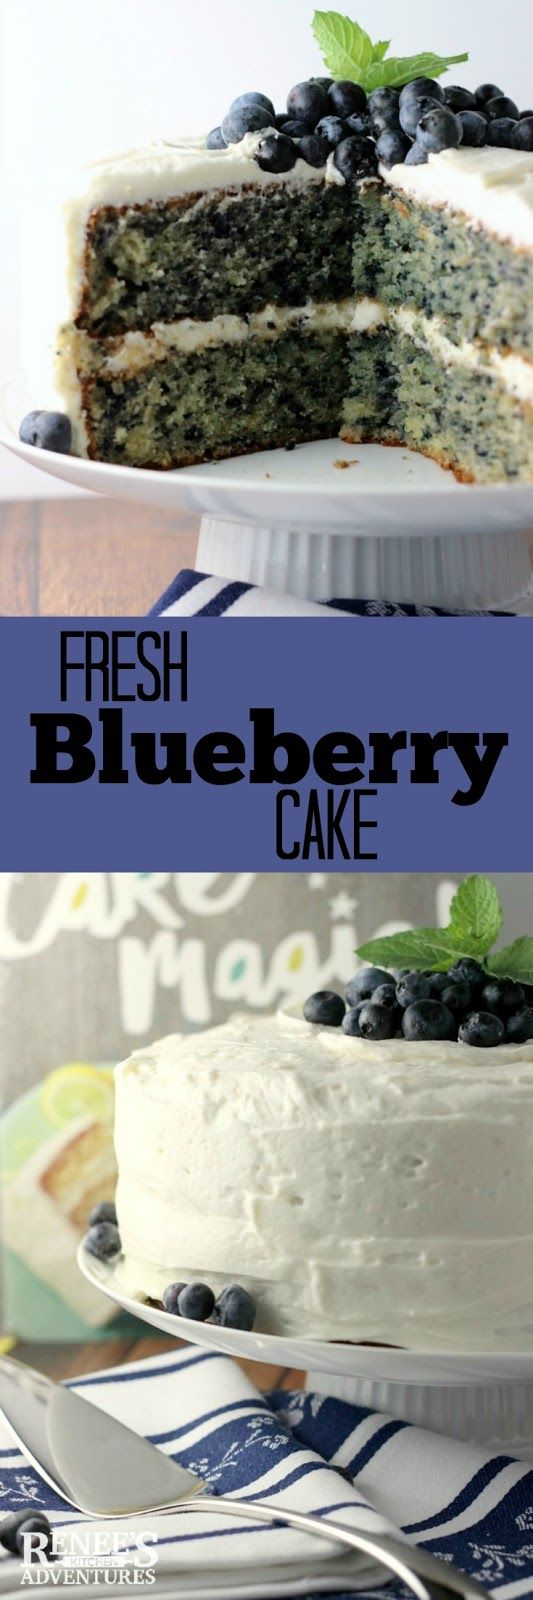 Fresh Blueberry Cake | Renee's Kitchen Adventures - fresh blueberries in a moist homemade cake coated in cream cheese frosting for the dessert any day of the week!  Easy cake from-scratch cake recipe from Cake Magic! the cookbook. #WeekdaySupper #ad #CakeMagic @workmanpub @thewrightcook